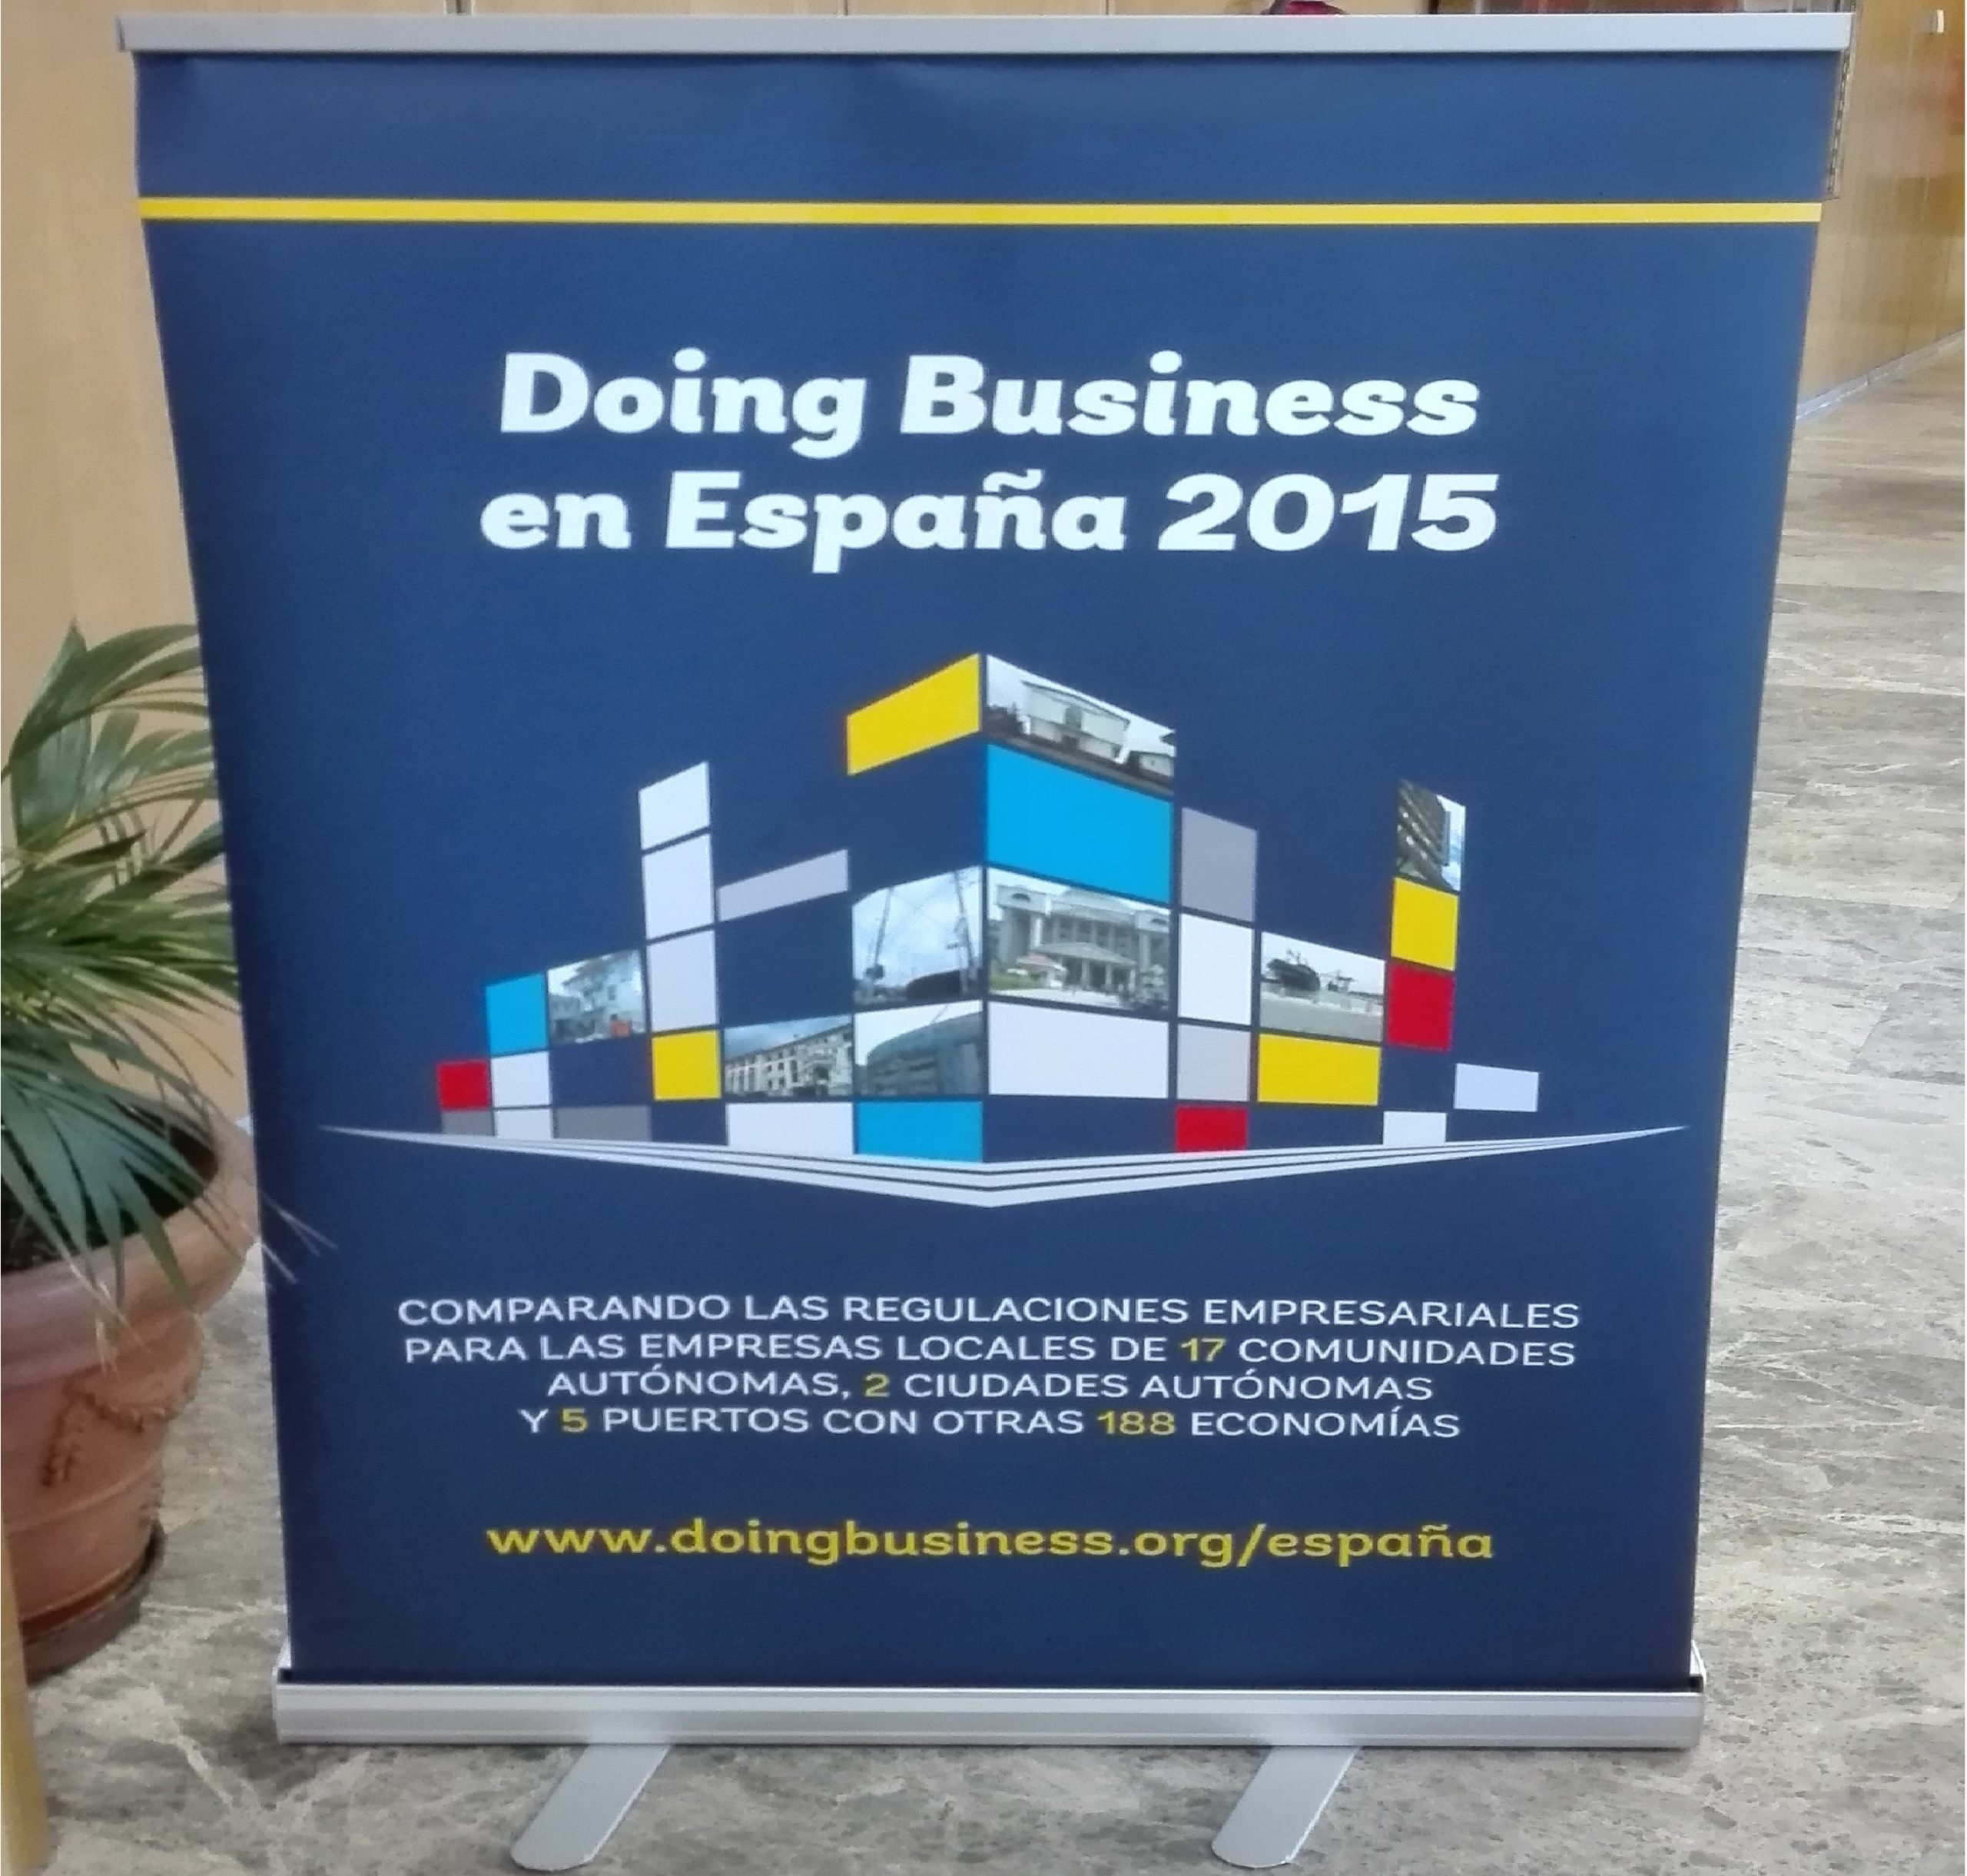 Doing Business en España